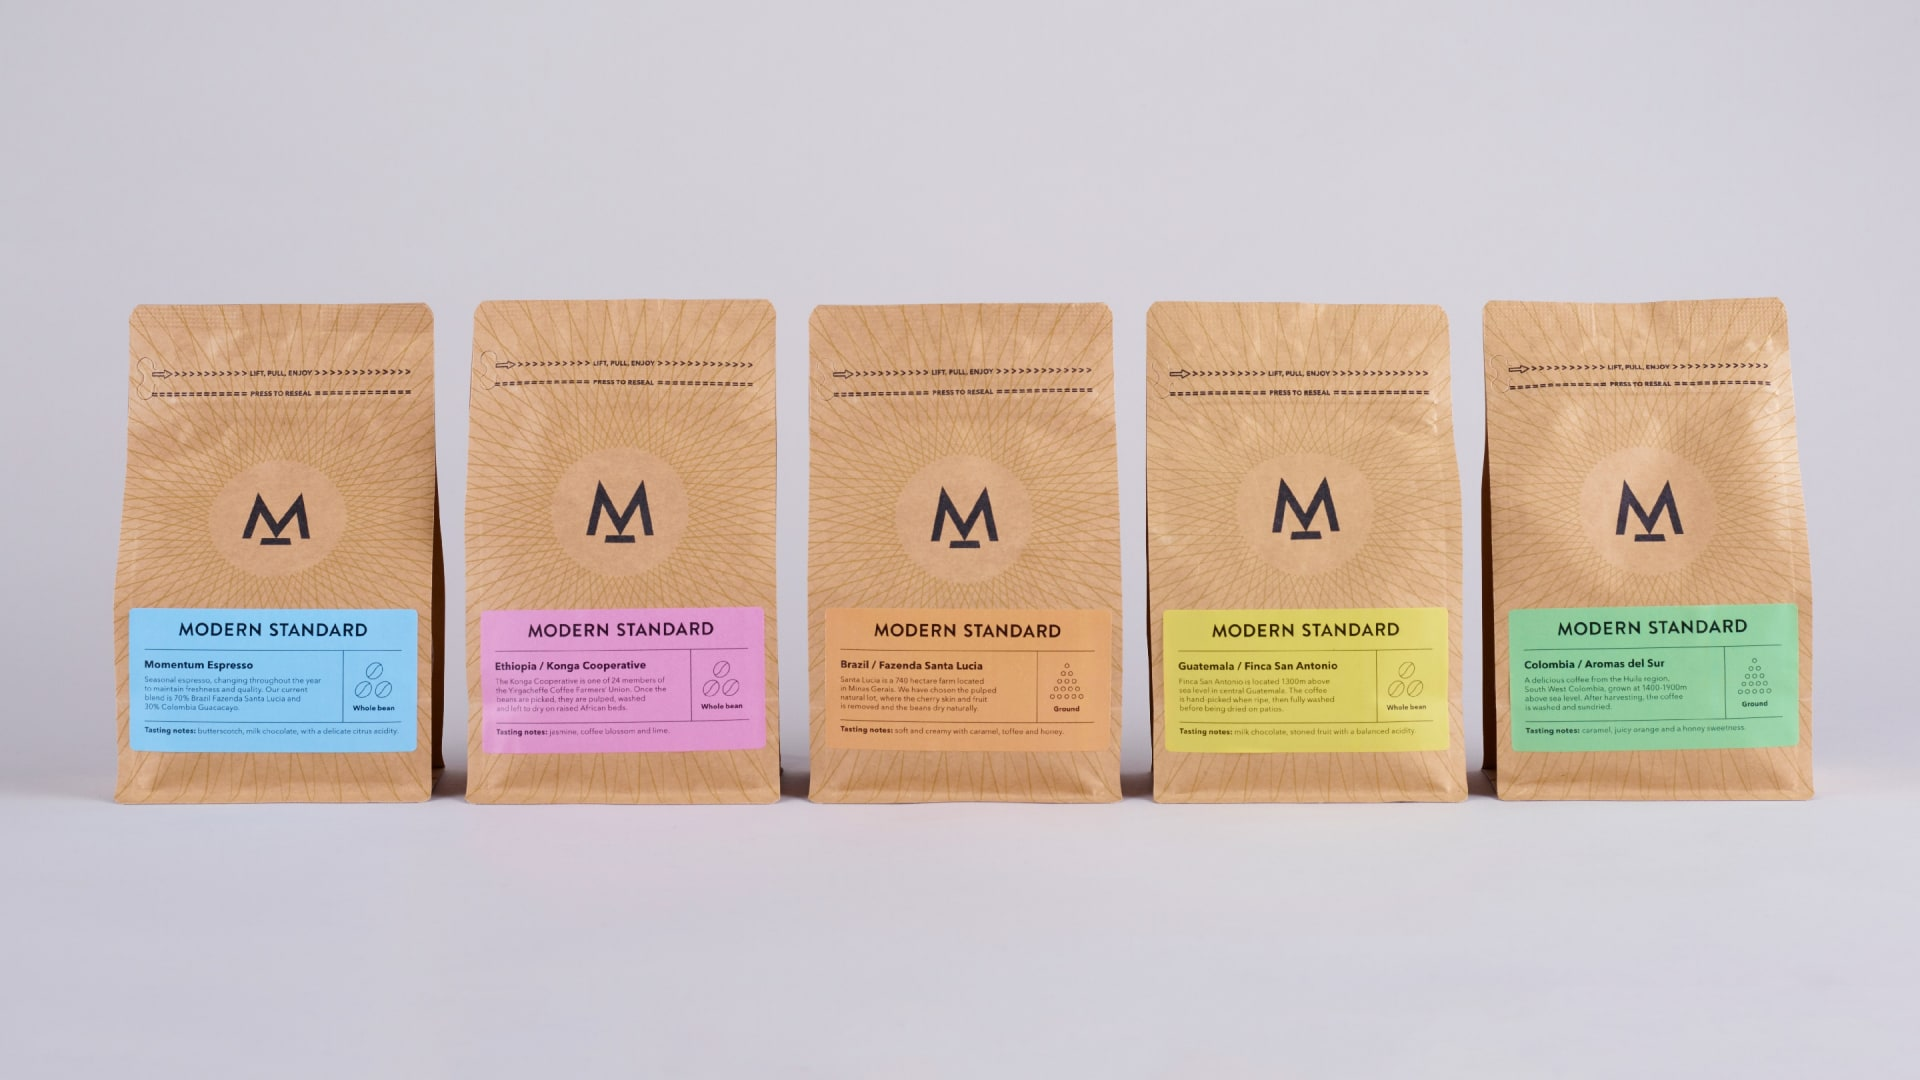 Modern Standard coffee packaging range